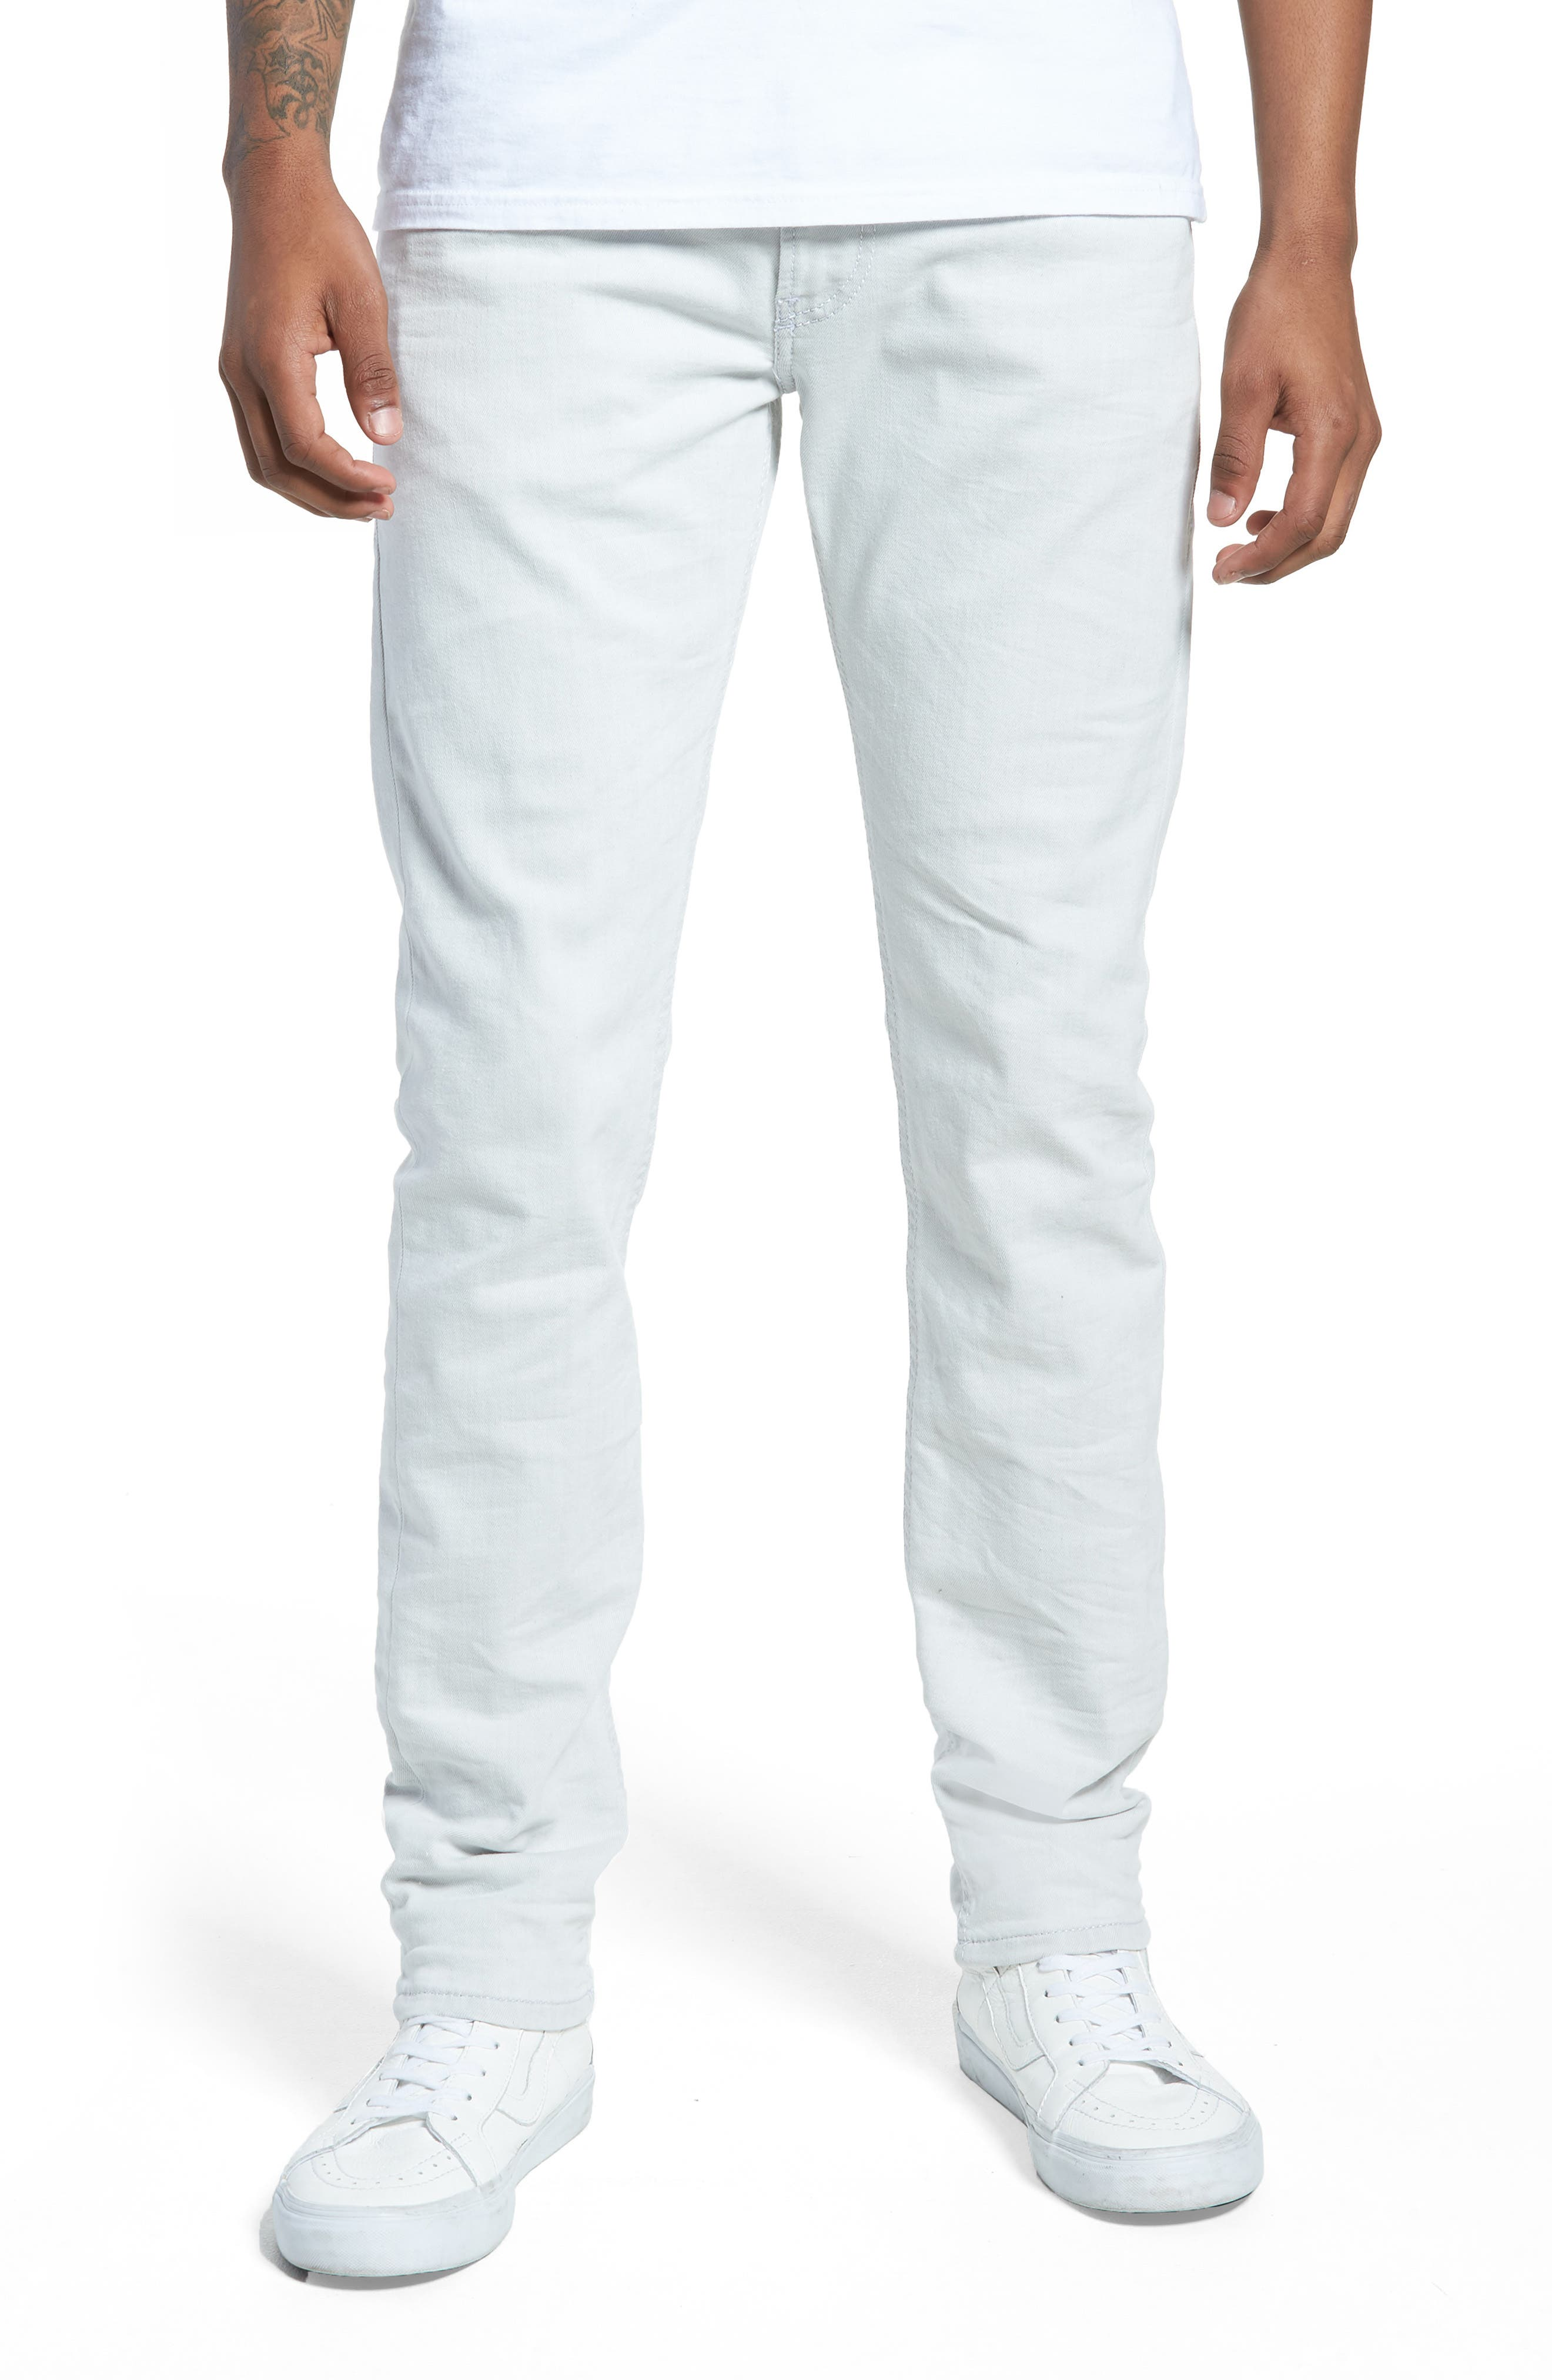 Thommer Slim Fit Jeans,                             Main thumbnail 1, color,                             0689F